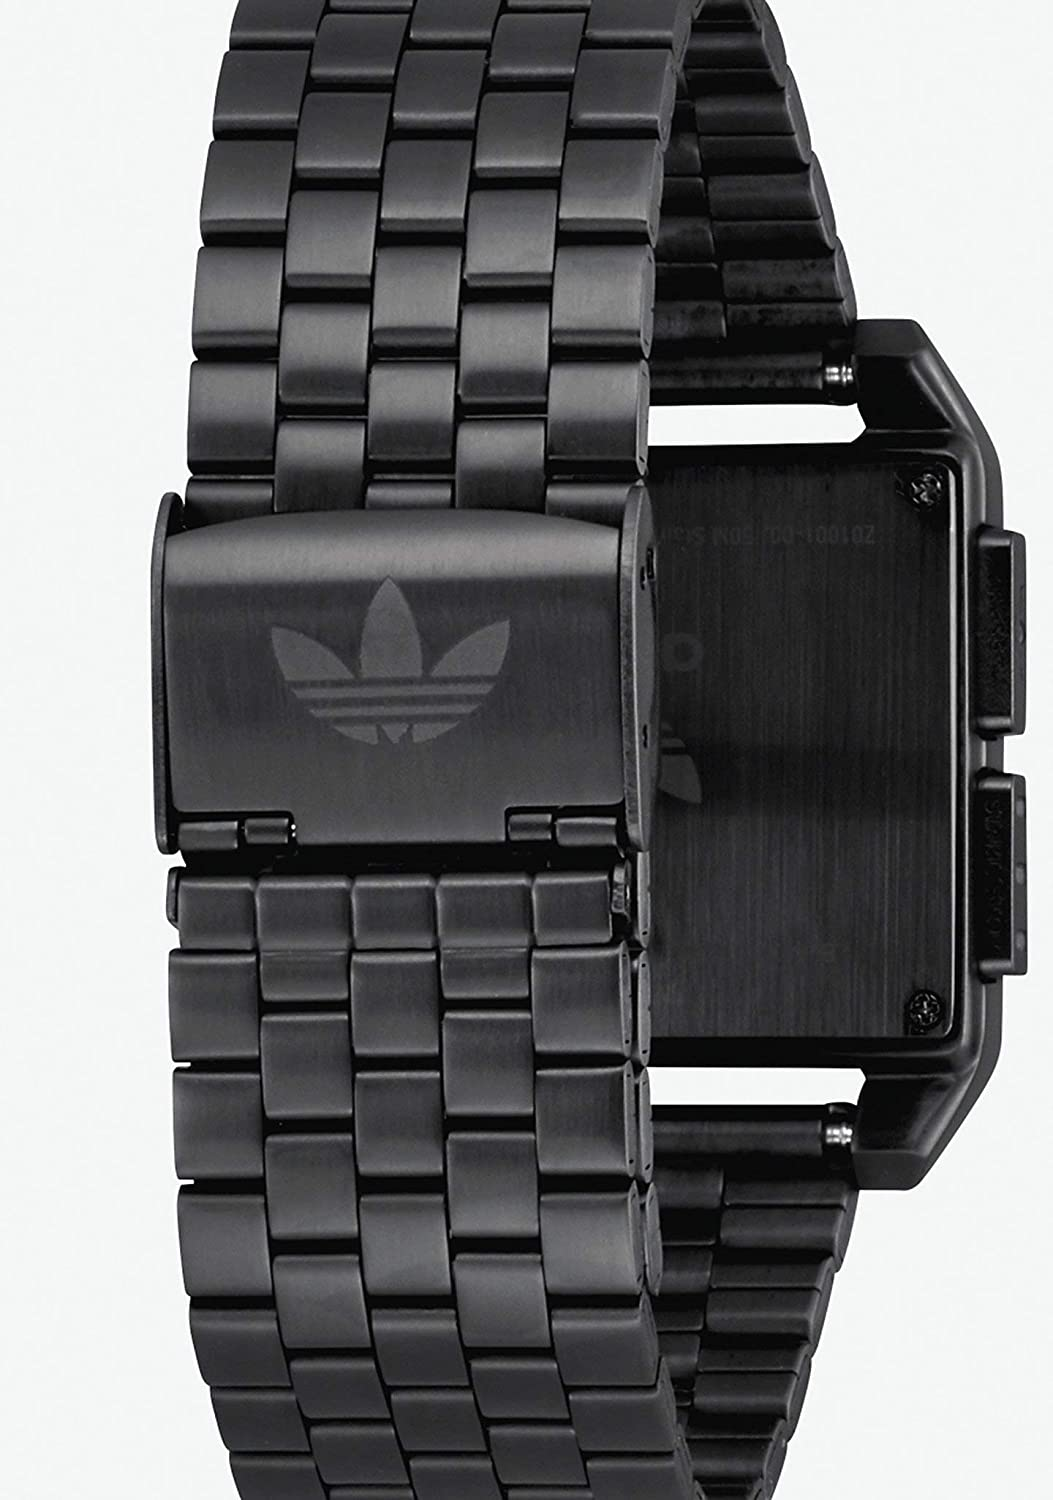 Adidas Watches Archive_M1. Men's 70's Style Stainless Steel Digital Watch with 5 Link Bracelet (36 mm). All Black